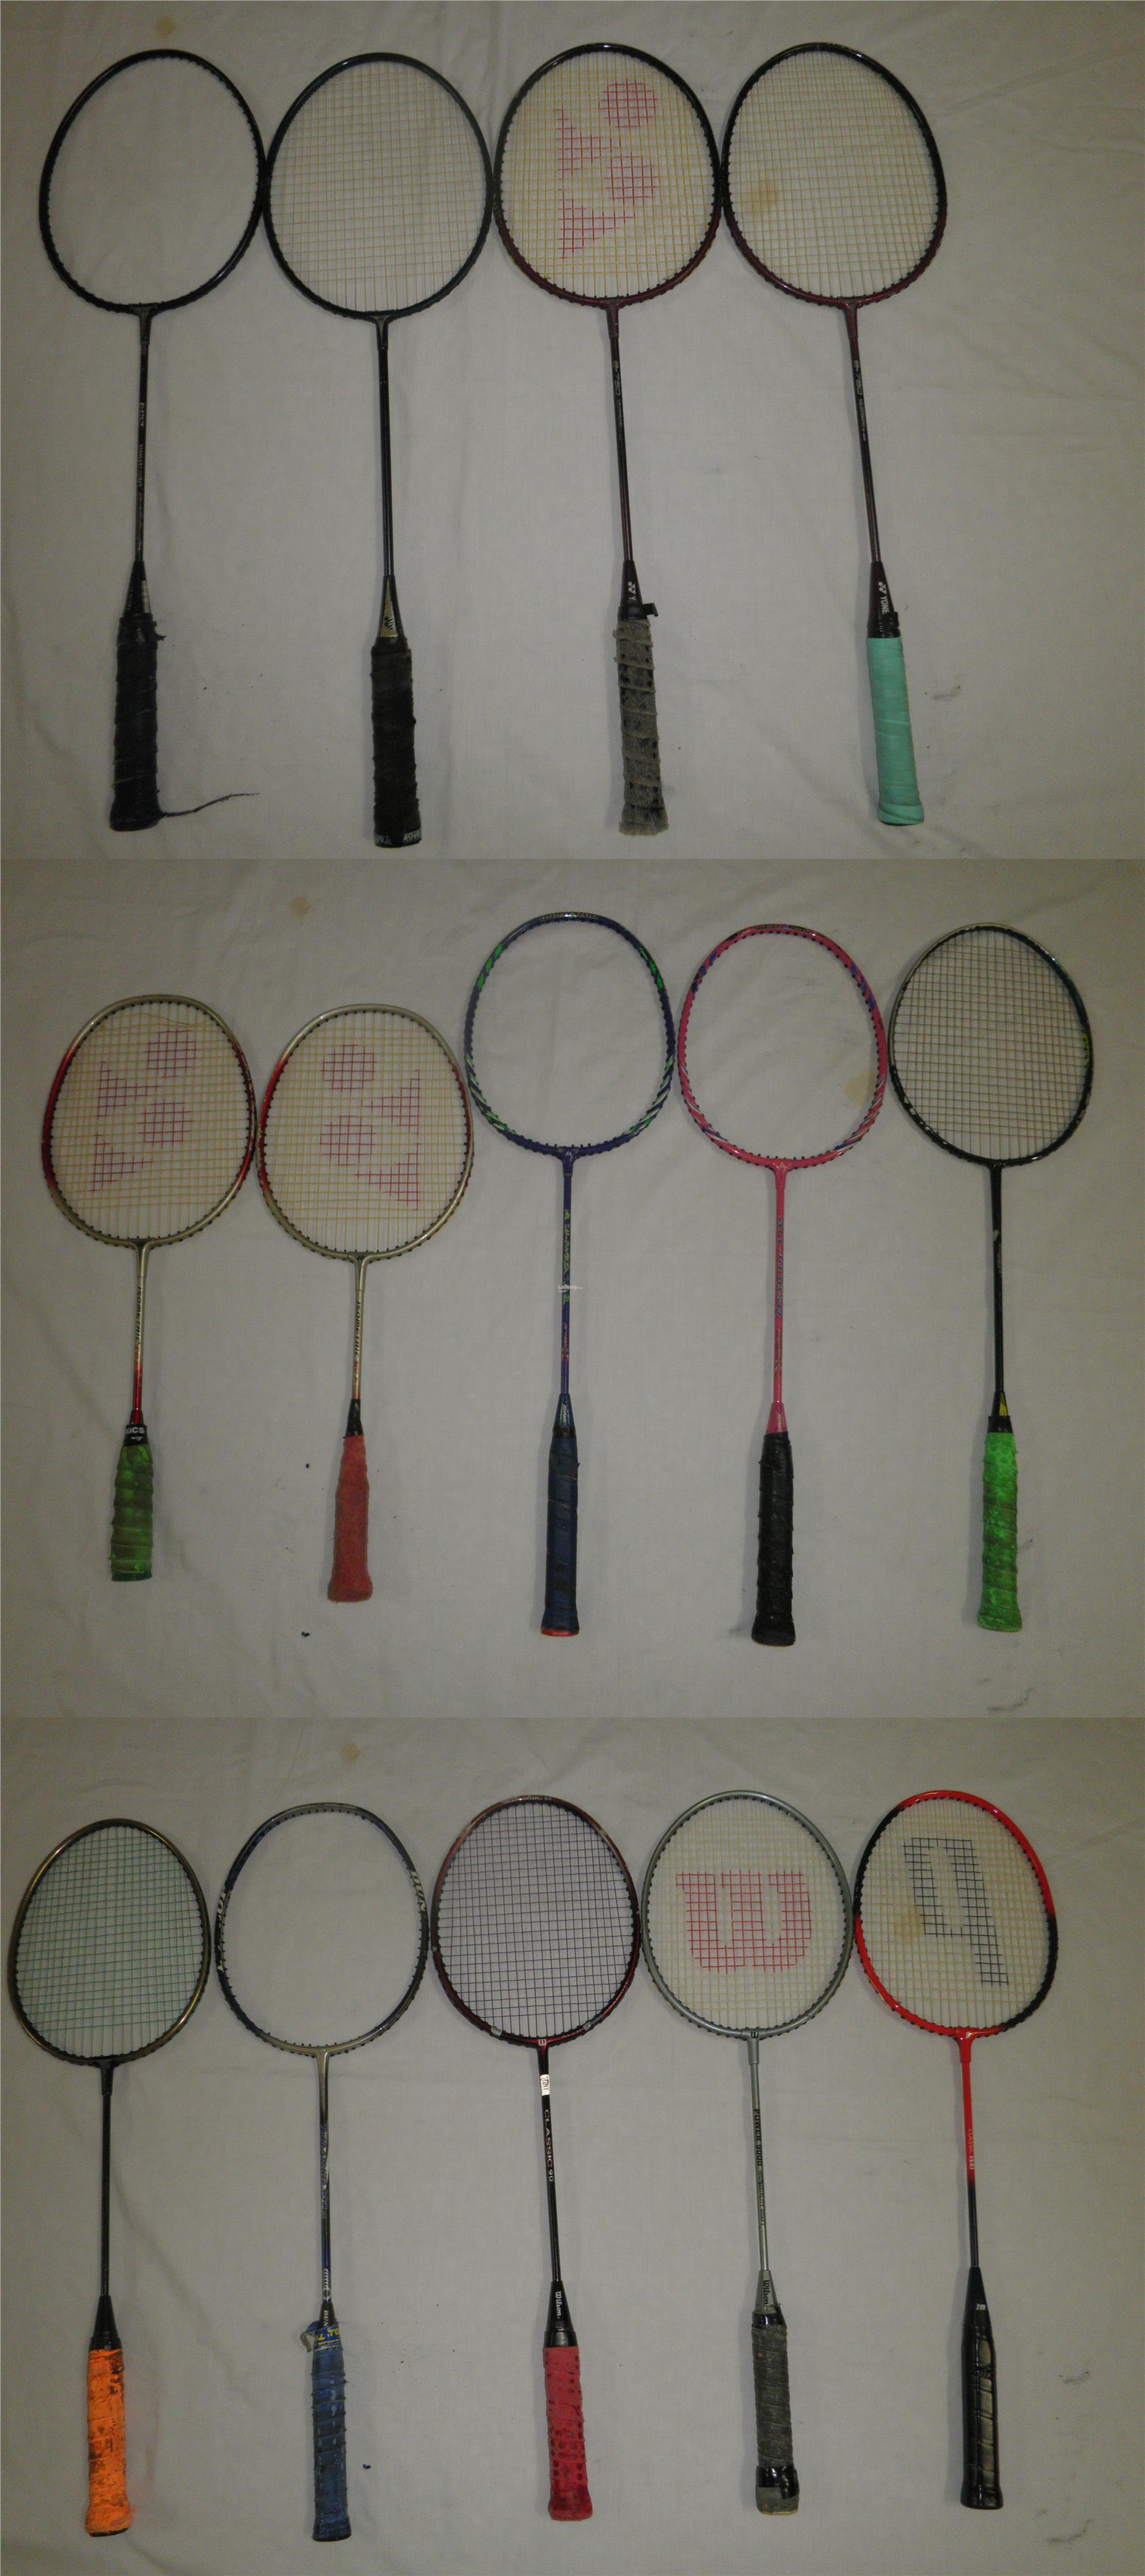 14 Badminton Rackets for Auction